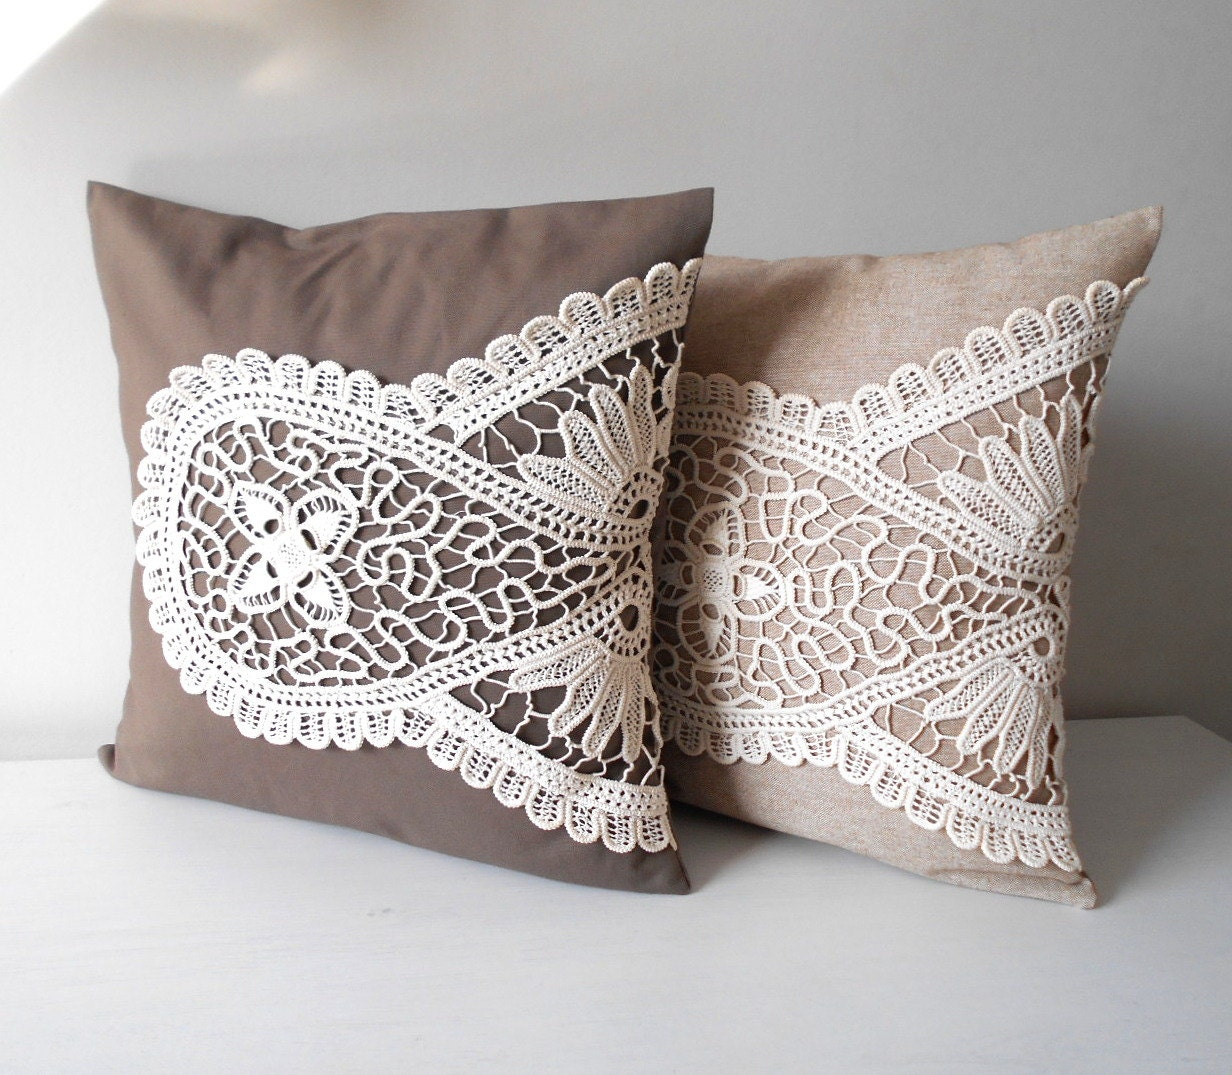 Rustic Decorative Pillow Covers : Shabby Chic Pillow Set Lace Pillow Covers Rustic Home Decor